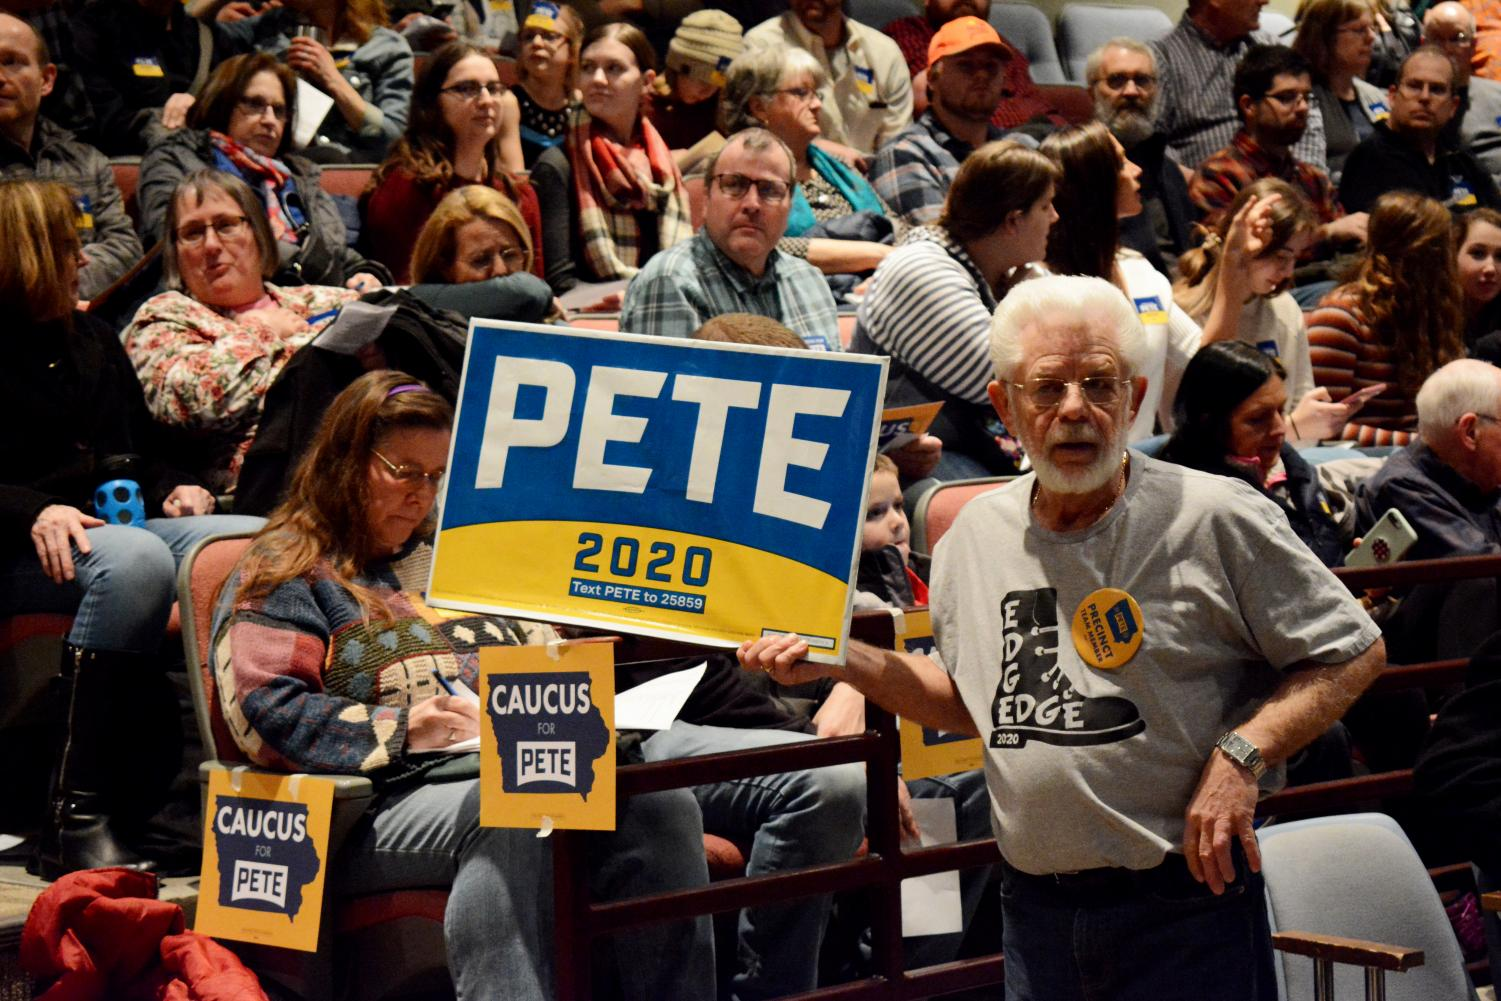 Supporters of Democratic candidate Pete Buttigieg congregate in support at the Iowa Caucus on Monday. Buttigieg went on to win the caucus by a small margin.